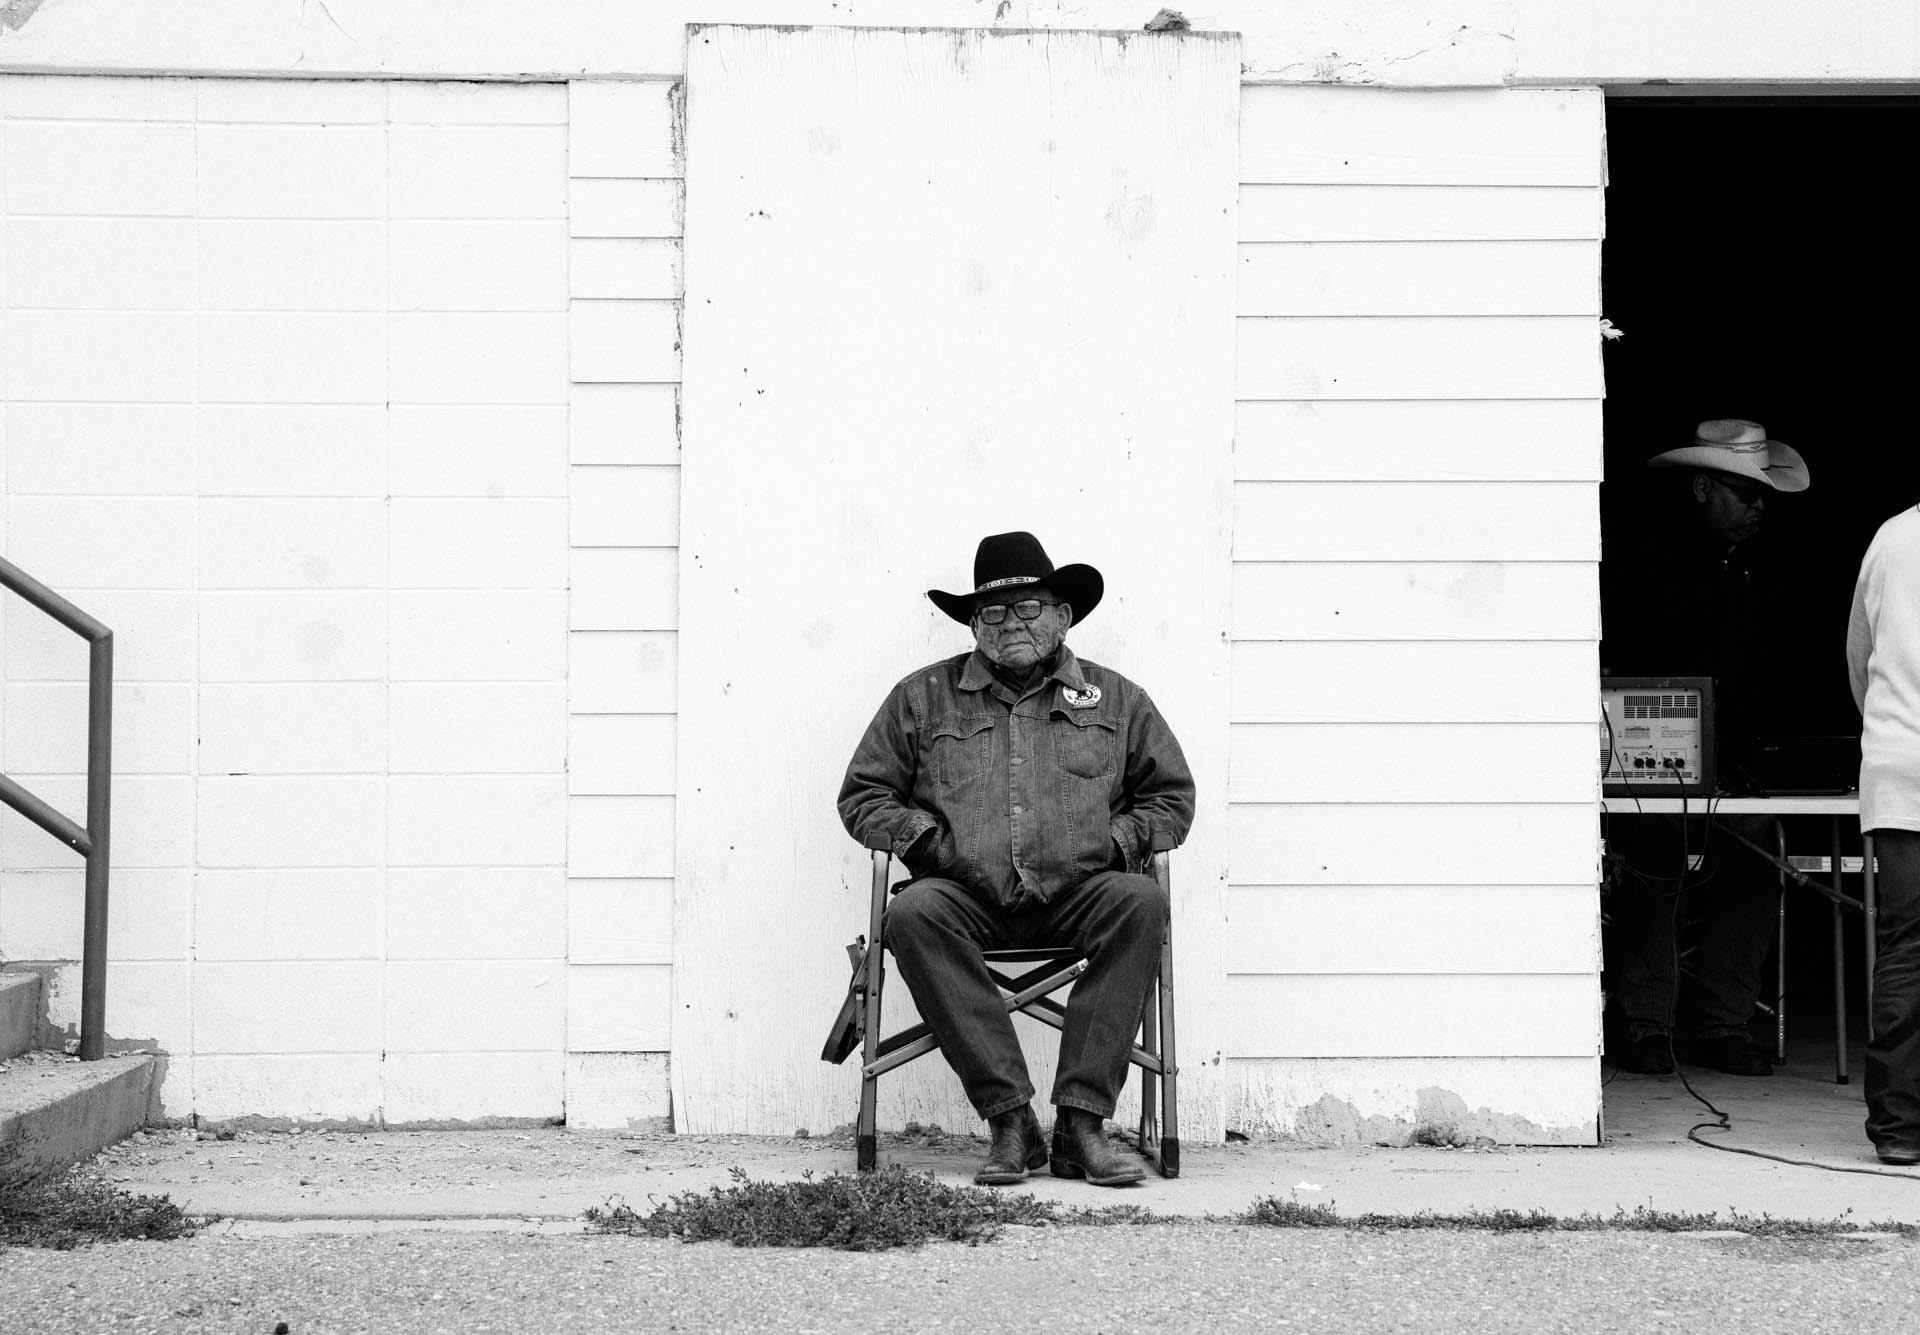 elder-with-cowboy-hat-sitting-alone.JPG